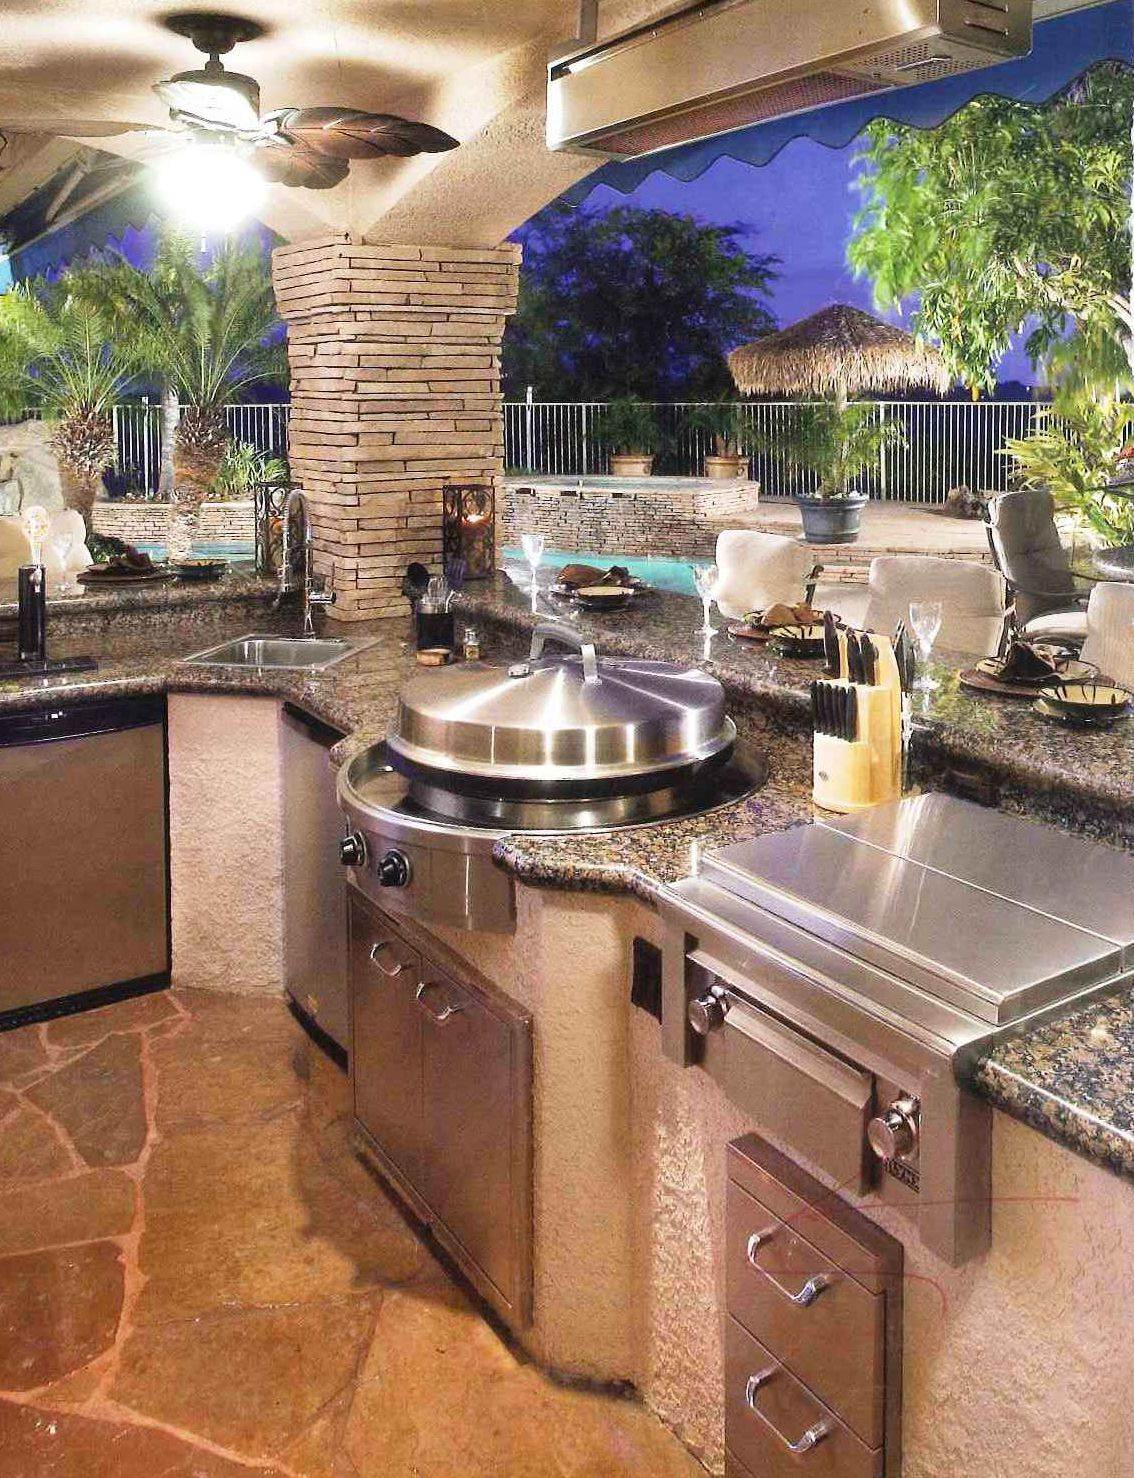 backyard kitchens country kitchen range hoods 70 awesomely clever ideas for outdoor designs homes circular cooktop in appliances view luxury real estate listings at www seattleluxurylifestyle com more